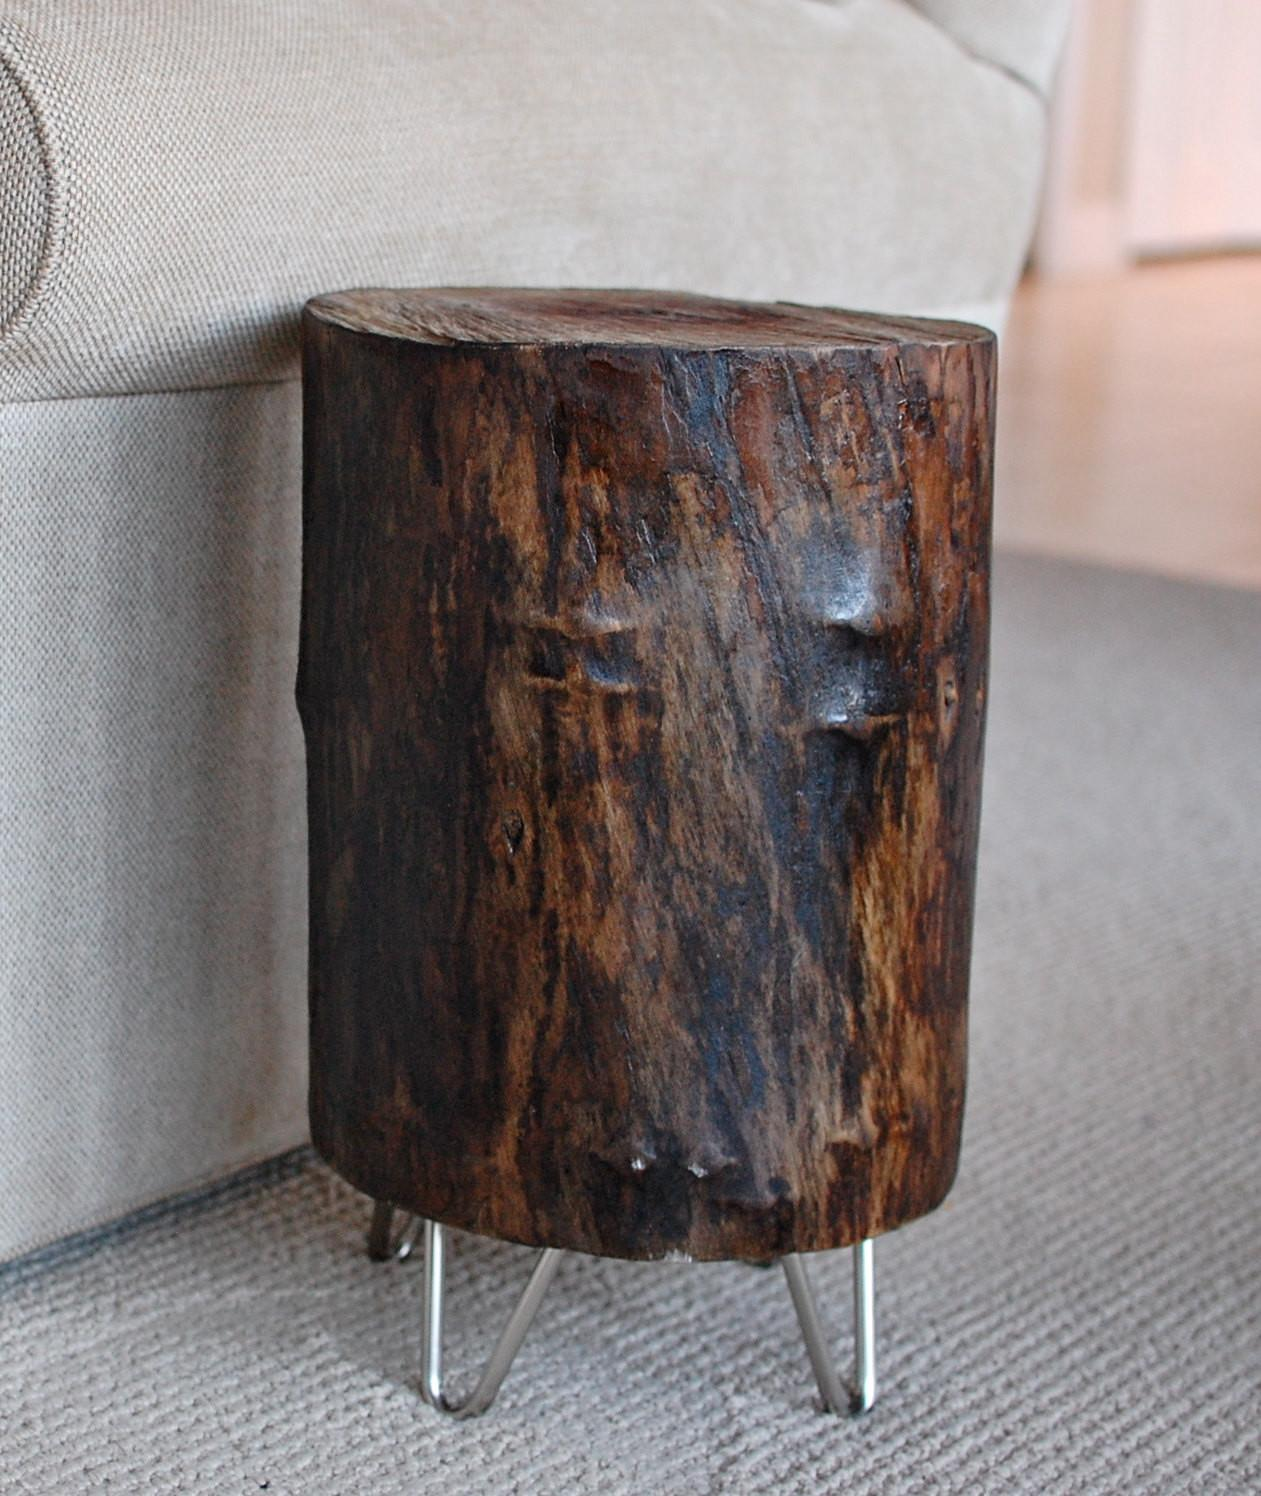 Tree Stump Hairpin Legs Reclaimed Wood Sumsouthernsunshine